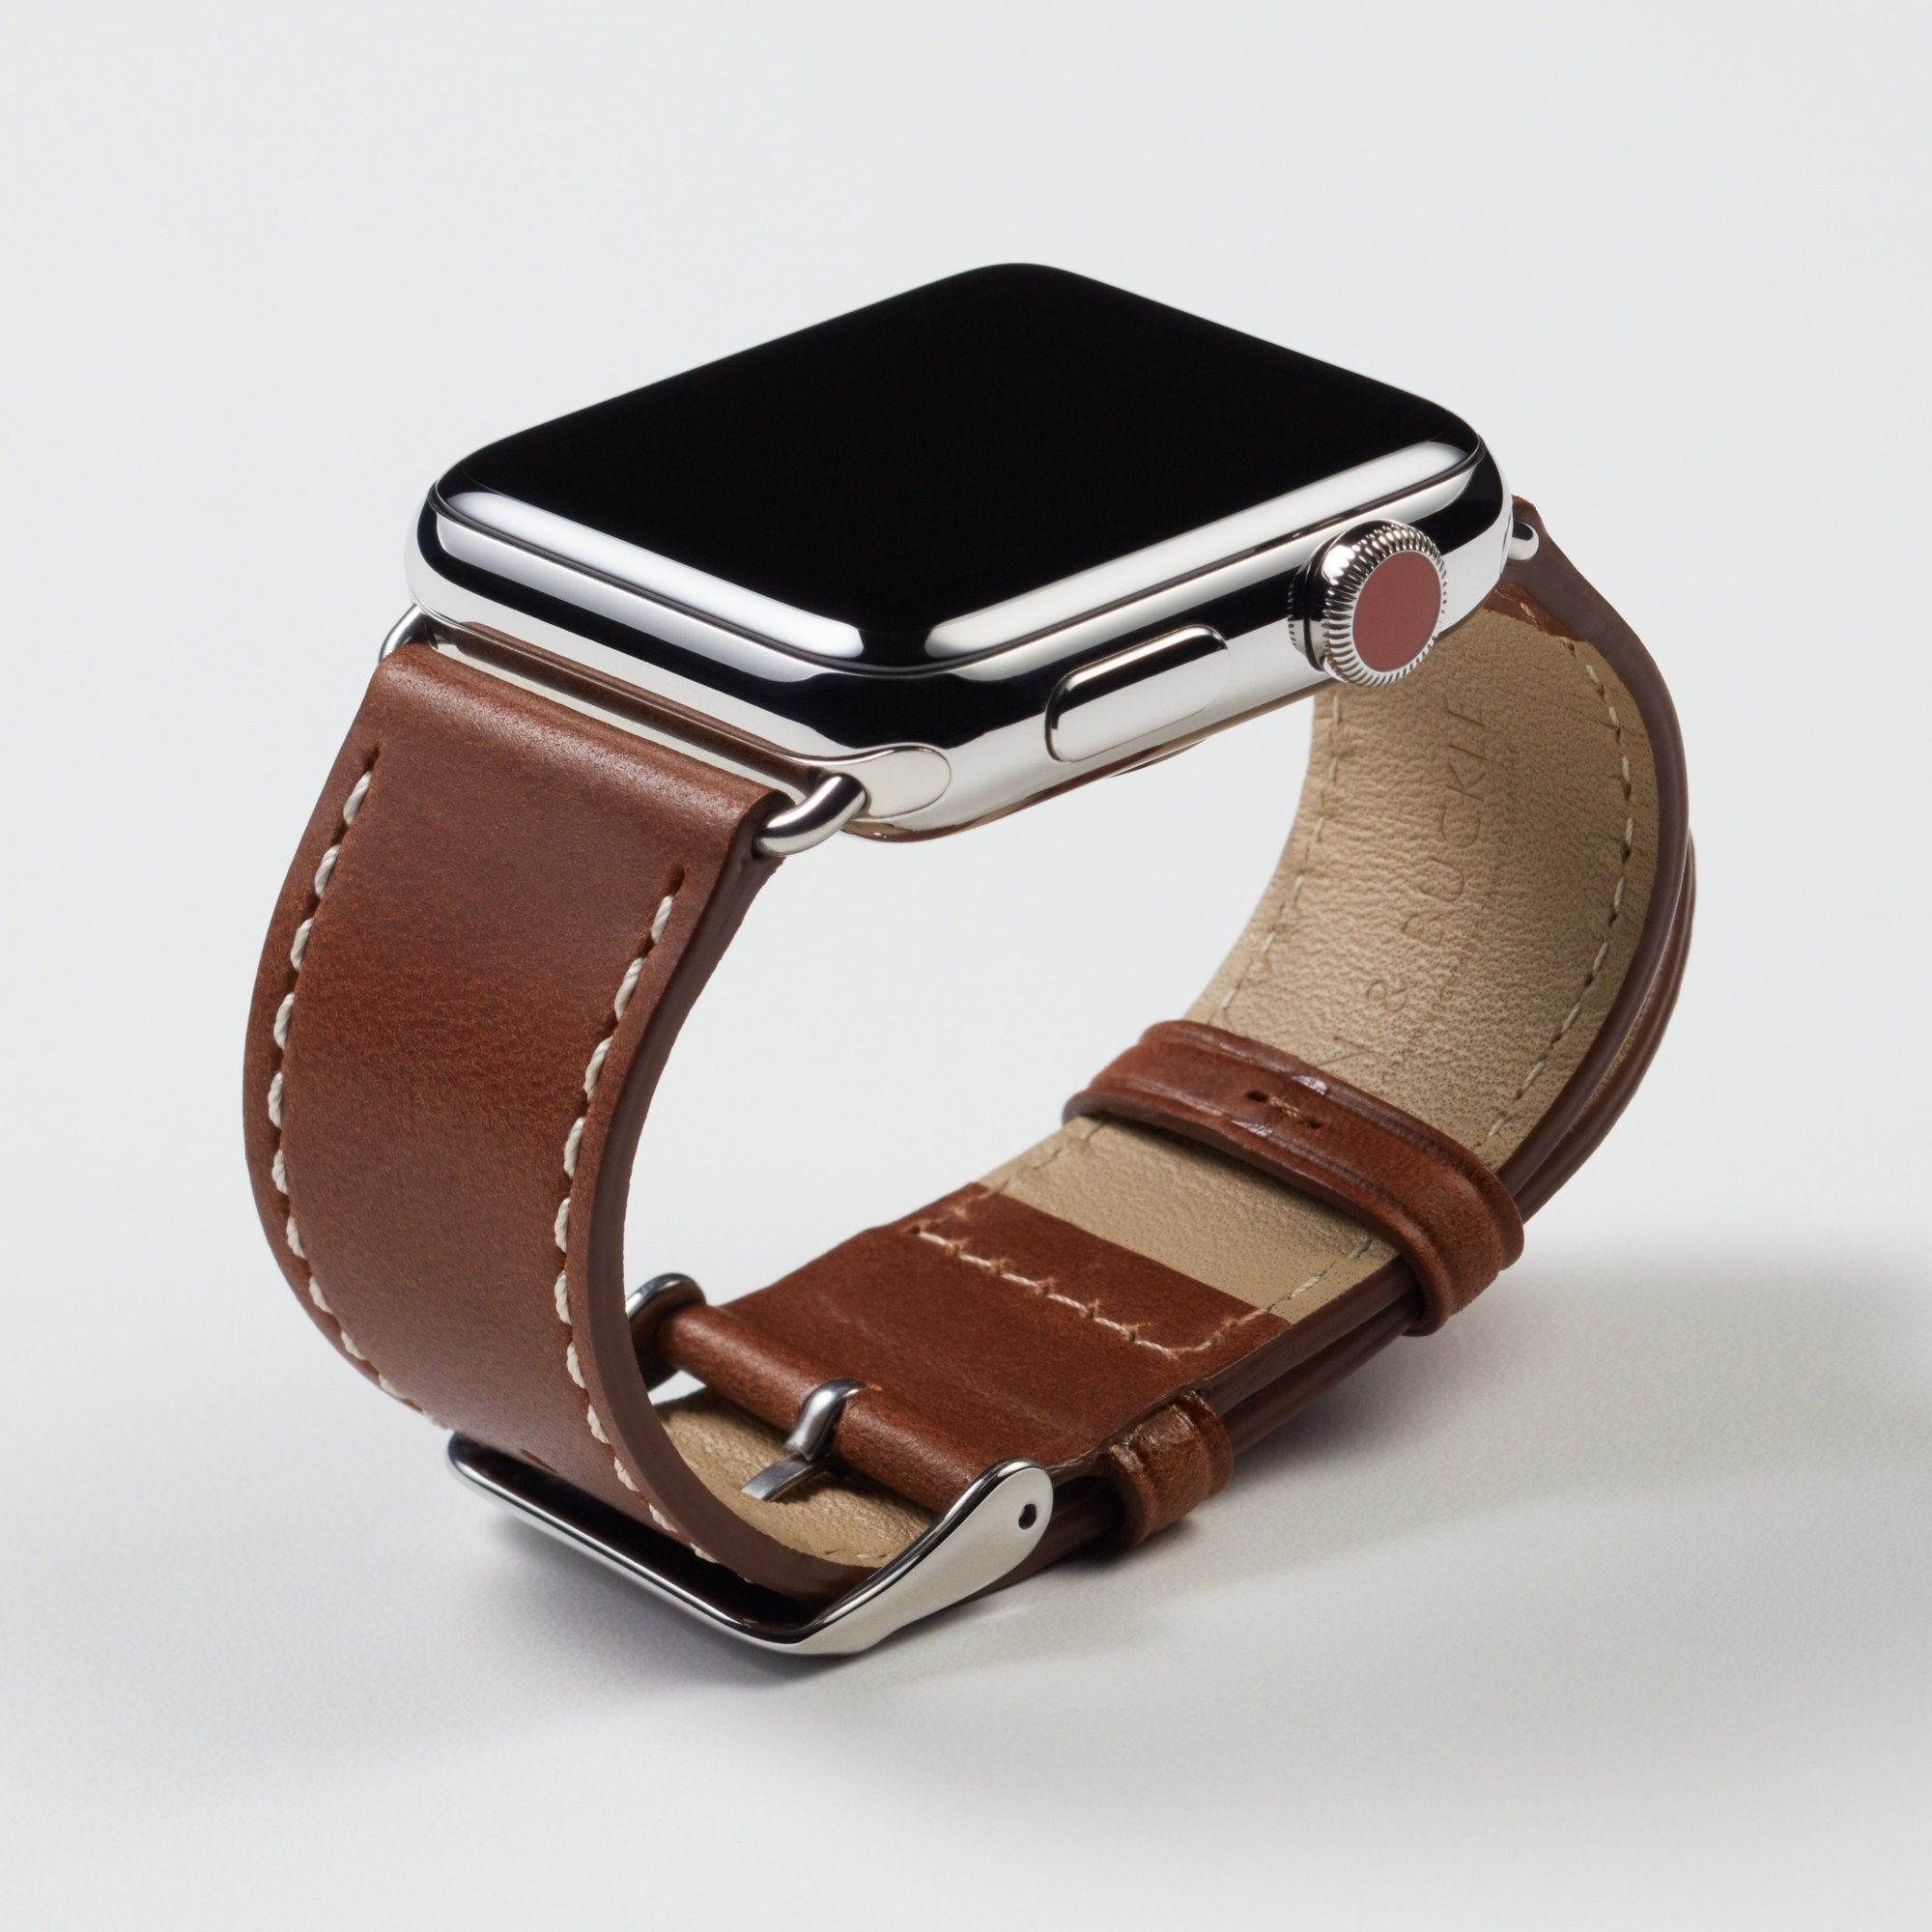 Pin and Buckle Apple Watch Bands - Full Grain Vegetable Tanned Leather - Luxe - Chestnut Brown - Silver